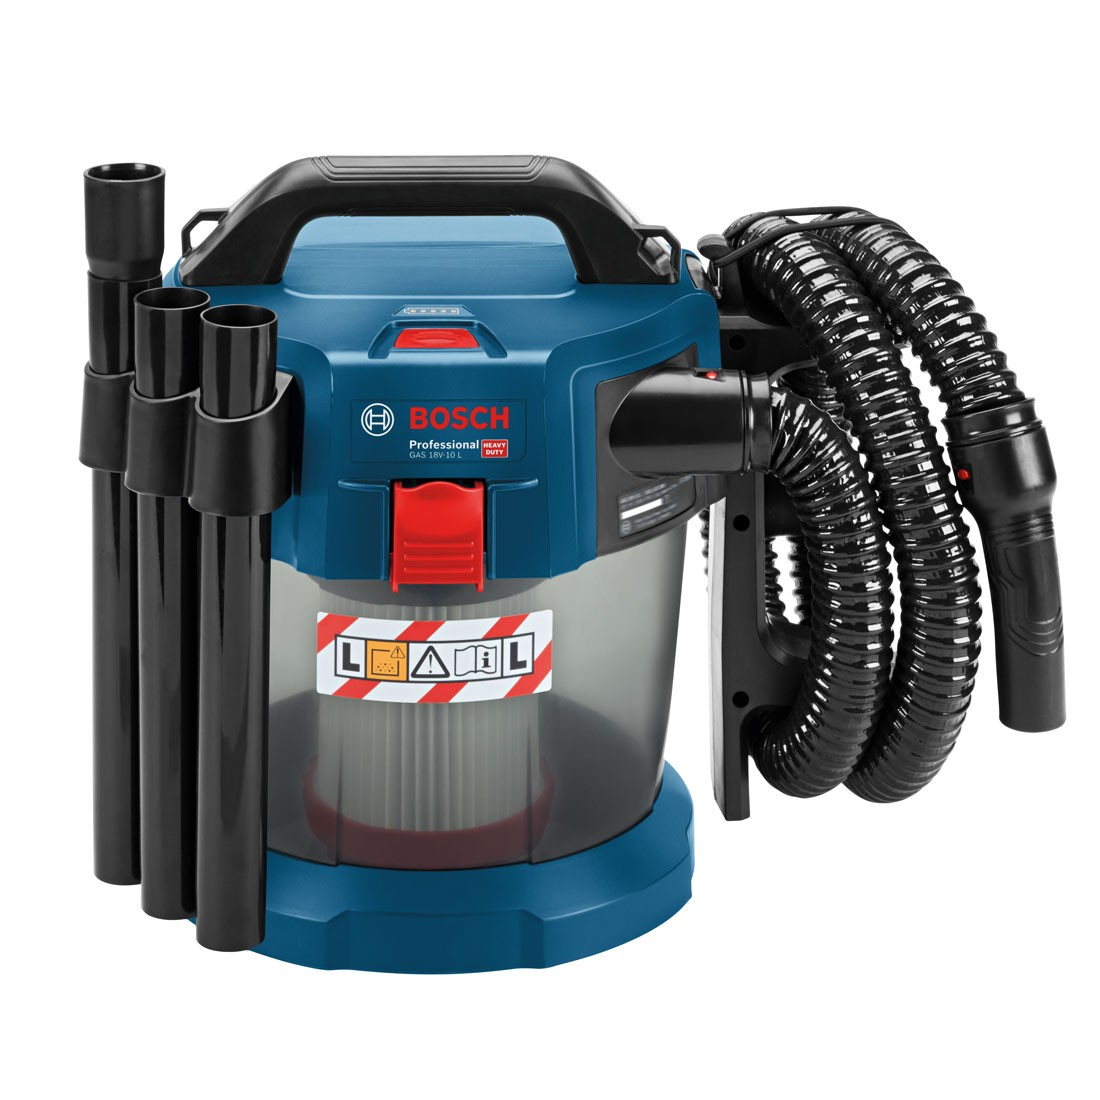 Bosch Gas 18 V 10 L Professional Cordless Wet Dry Dust